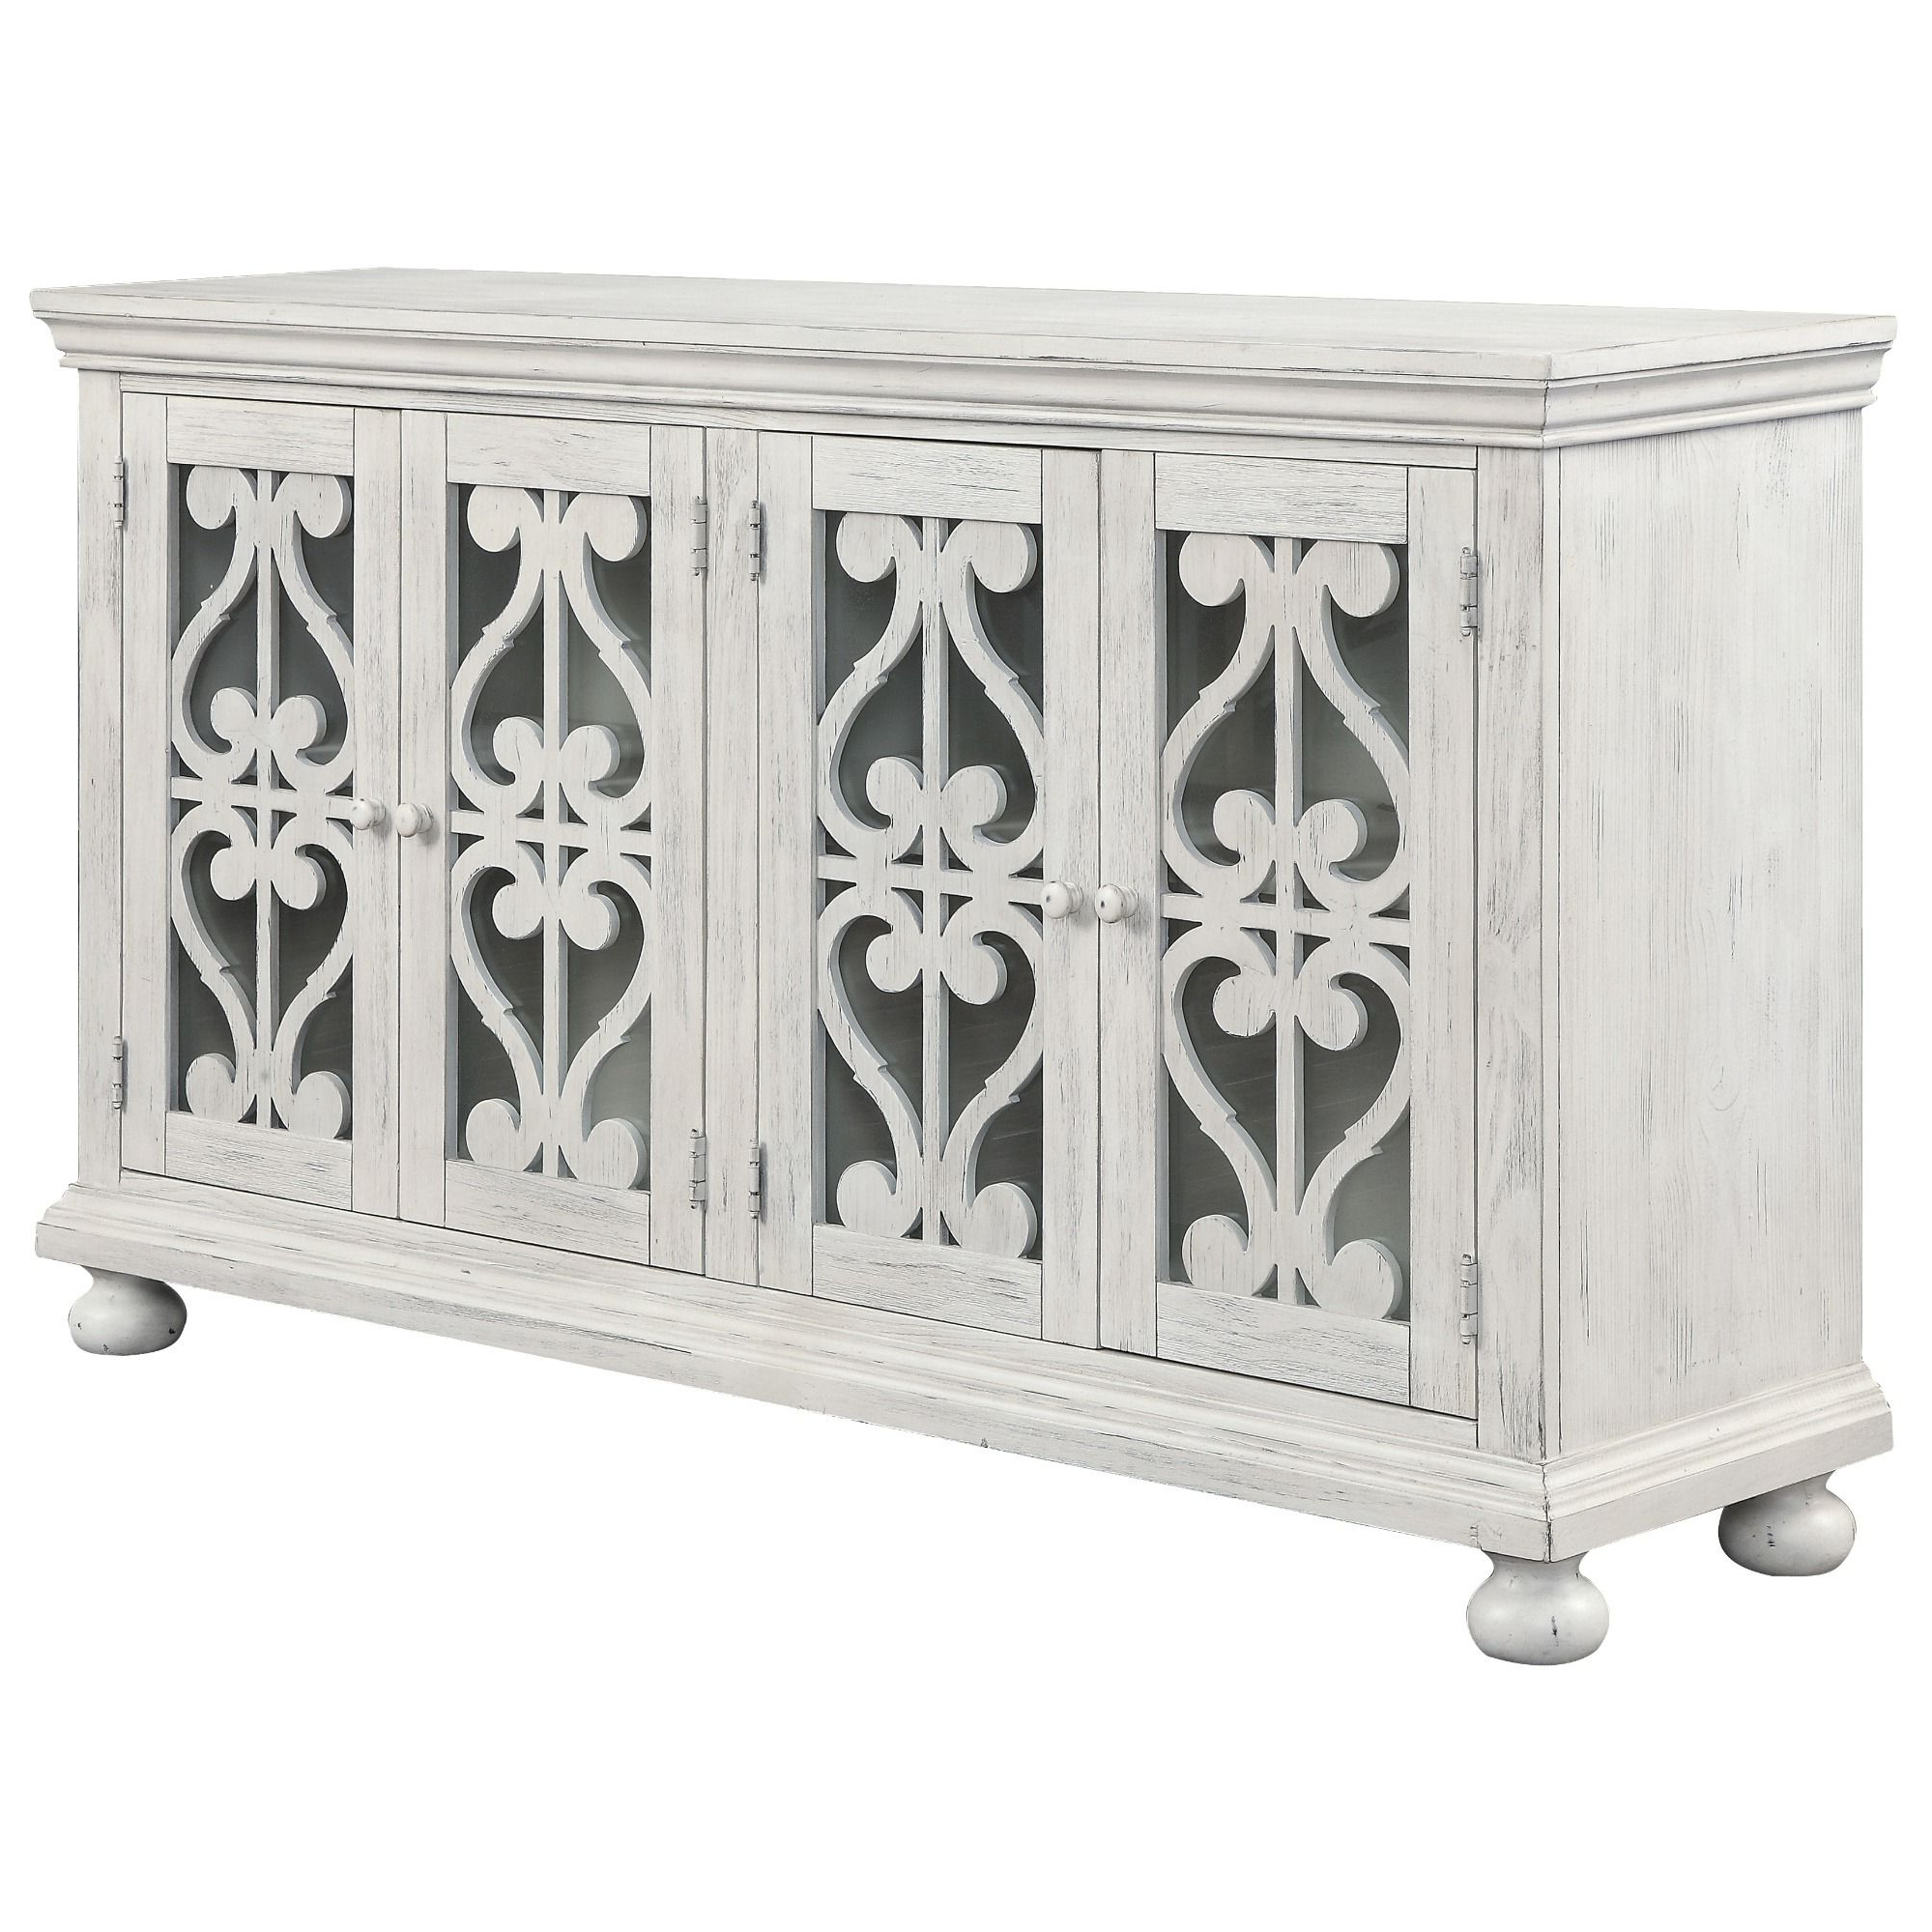 Trendy Serafino Media Credenzas Intended For The Orchard House Dining Collection Features This Stunning (View 14 of 20)